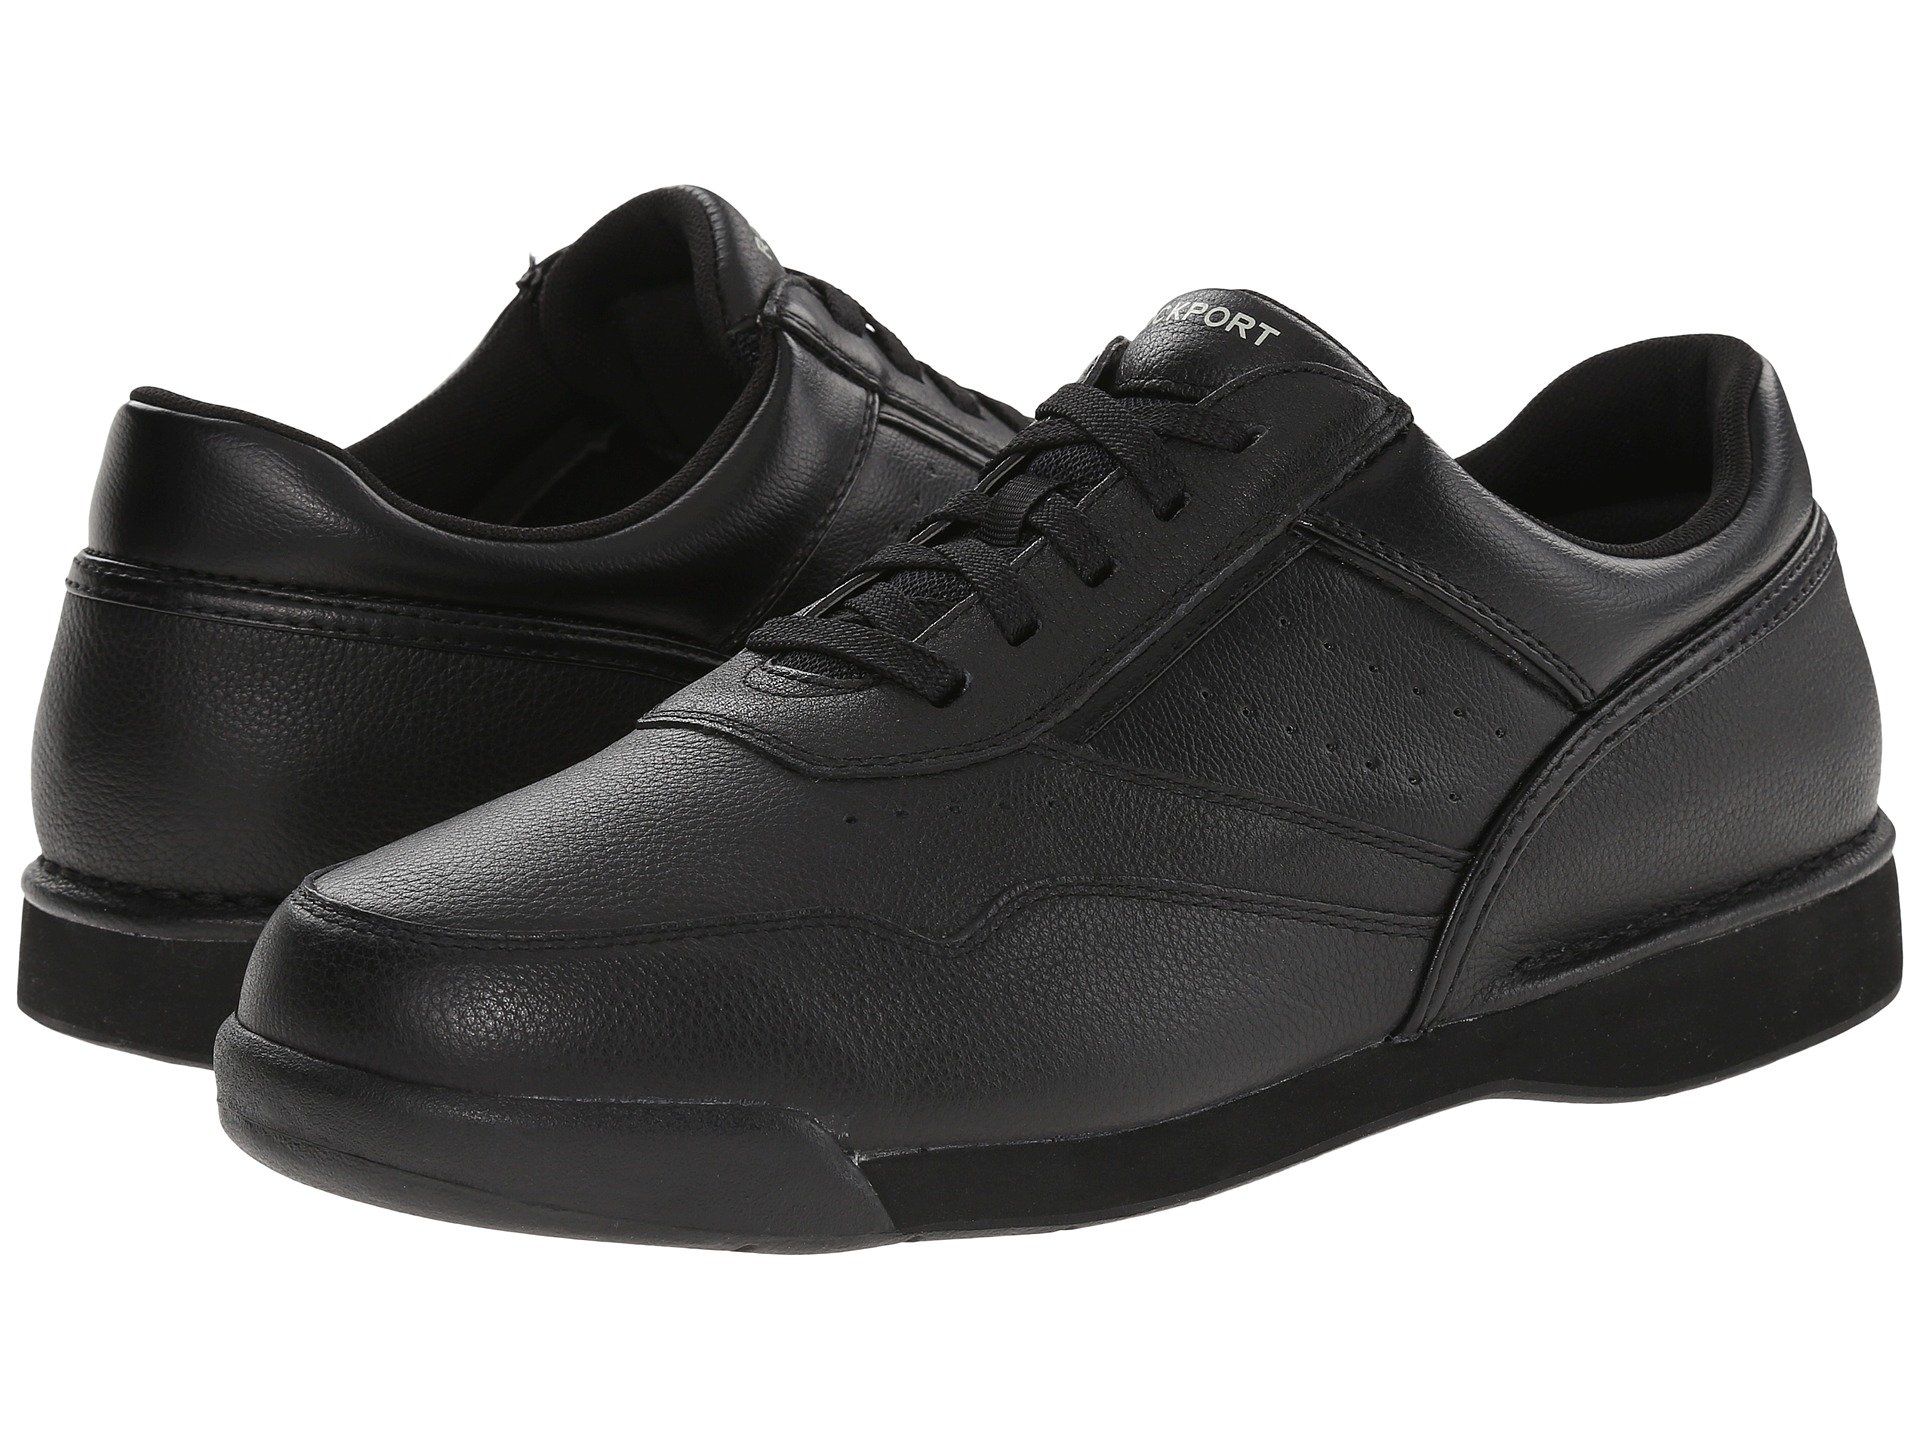 b918d4f3b6f Men's Rockport Shoes + FREE SHIPPING | Zappos.com